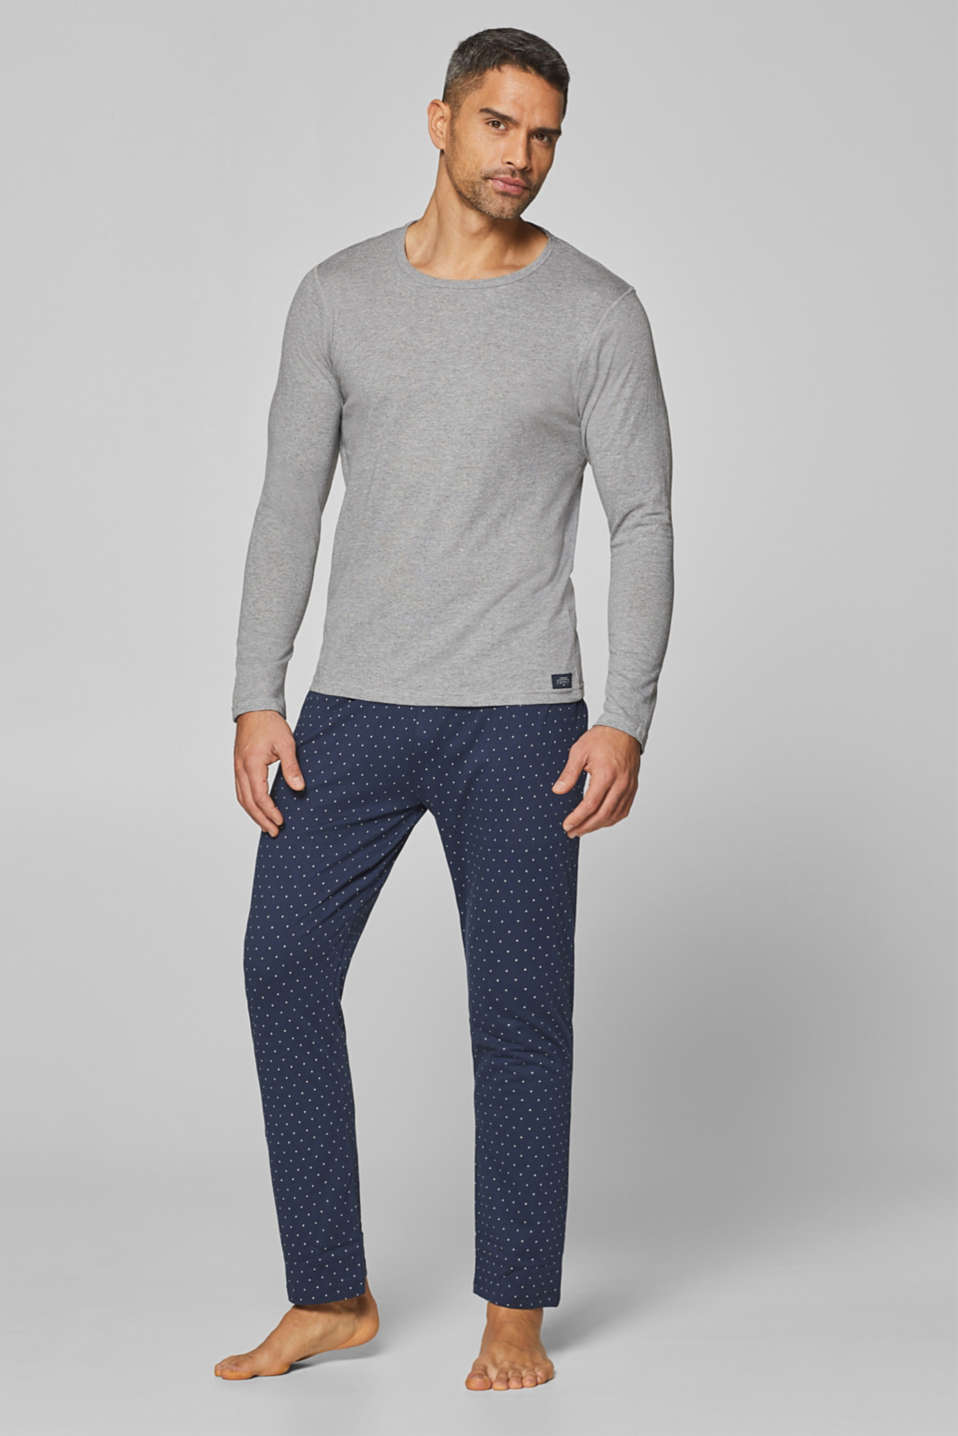 Esprit - Simple pyjamas in comfortable jersey